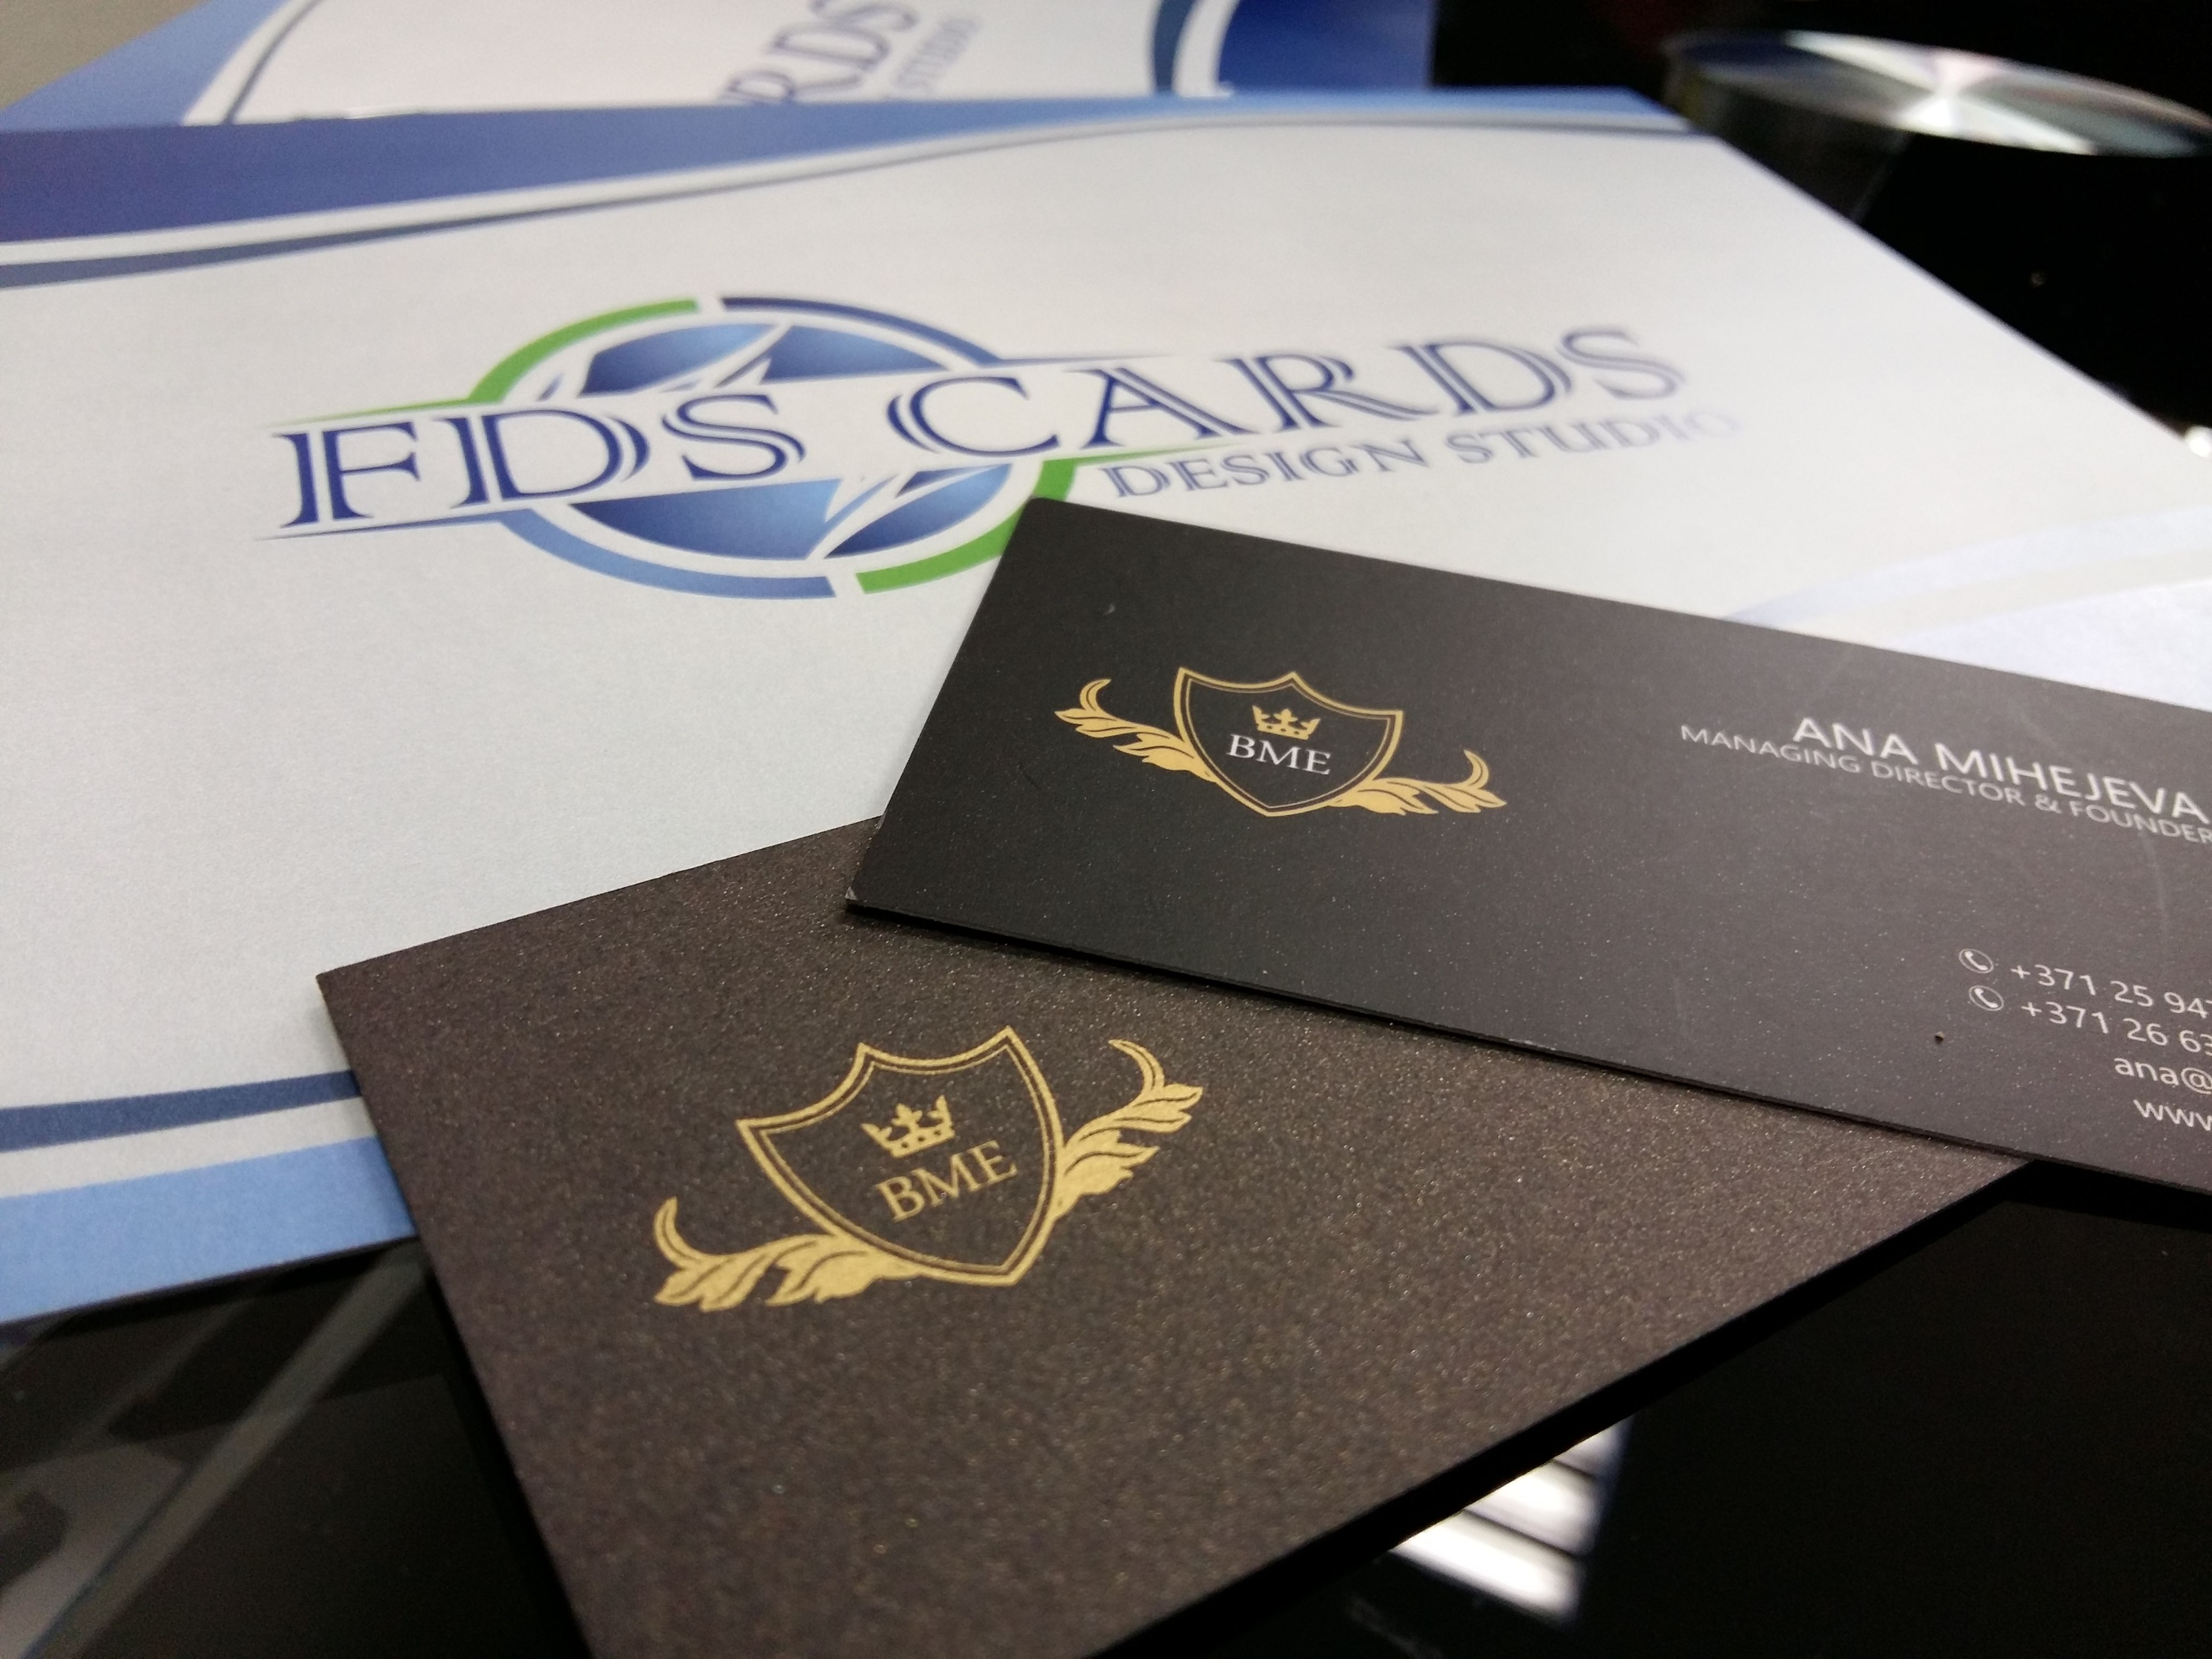 Marketing company black and gold luxury business card blazon marketing company black and gold luxury business card blazon shiny paper silver and reheart Gallery